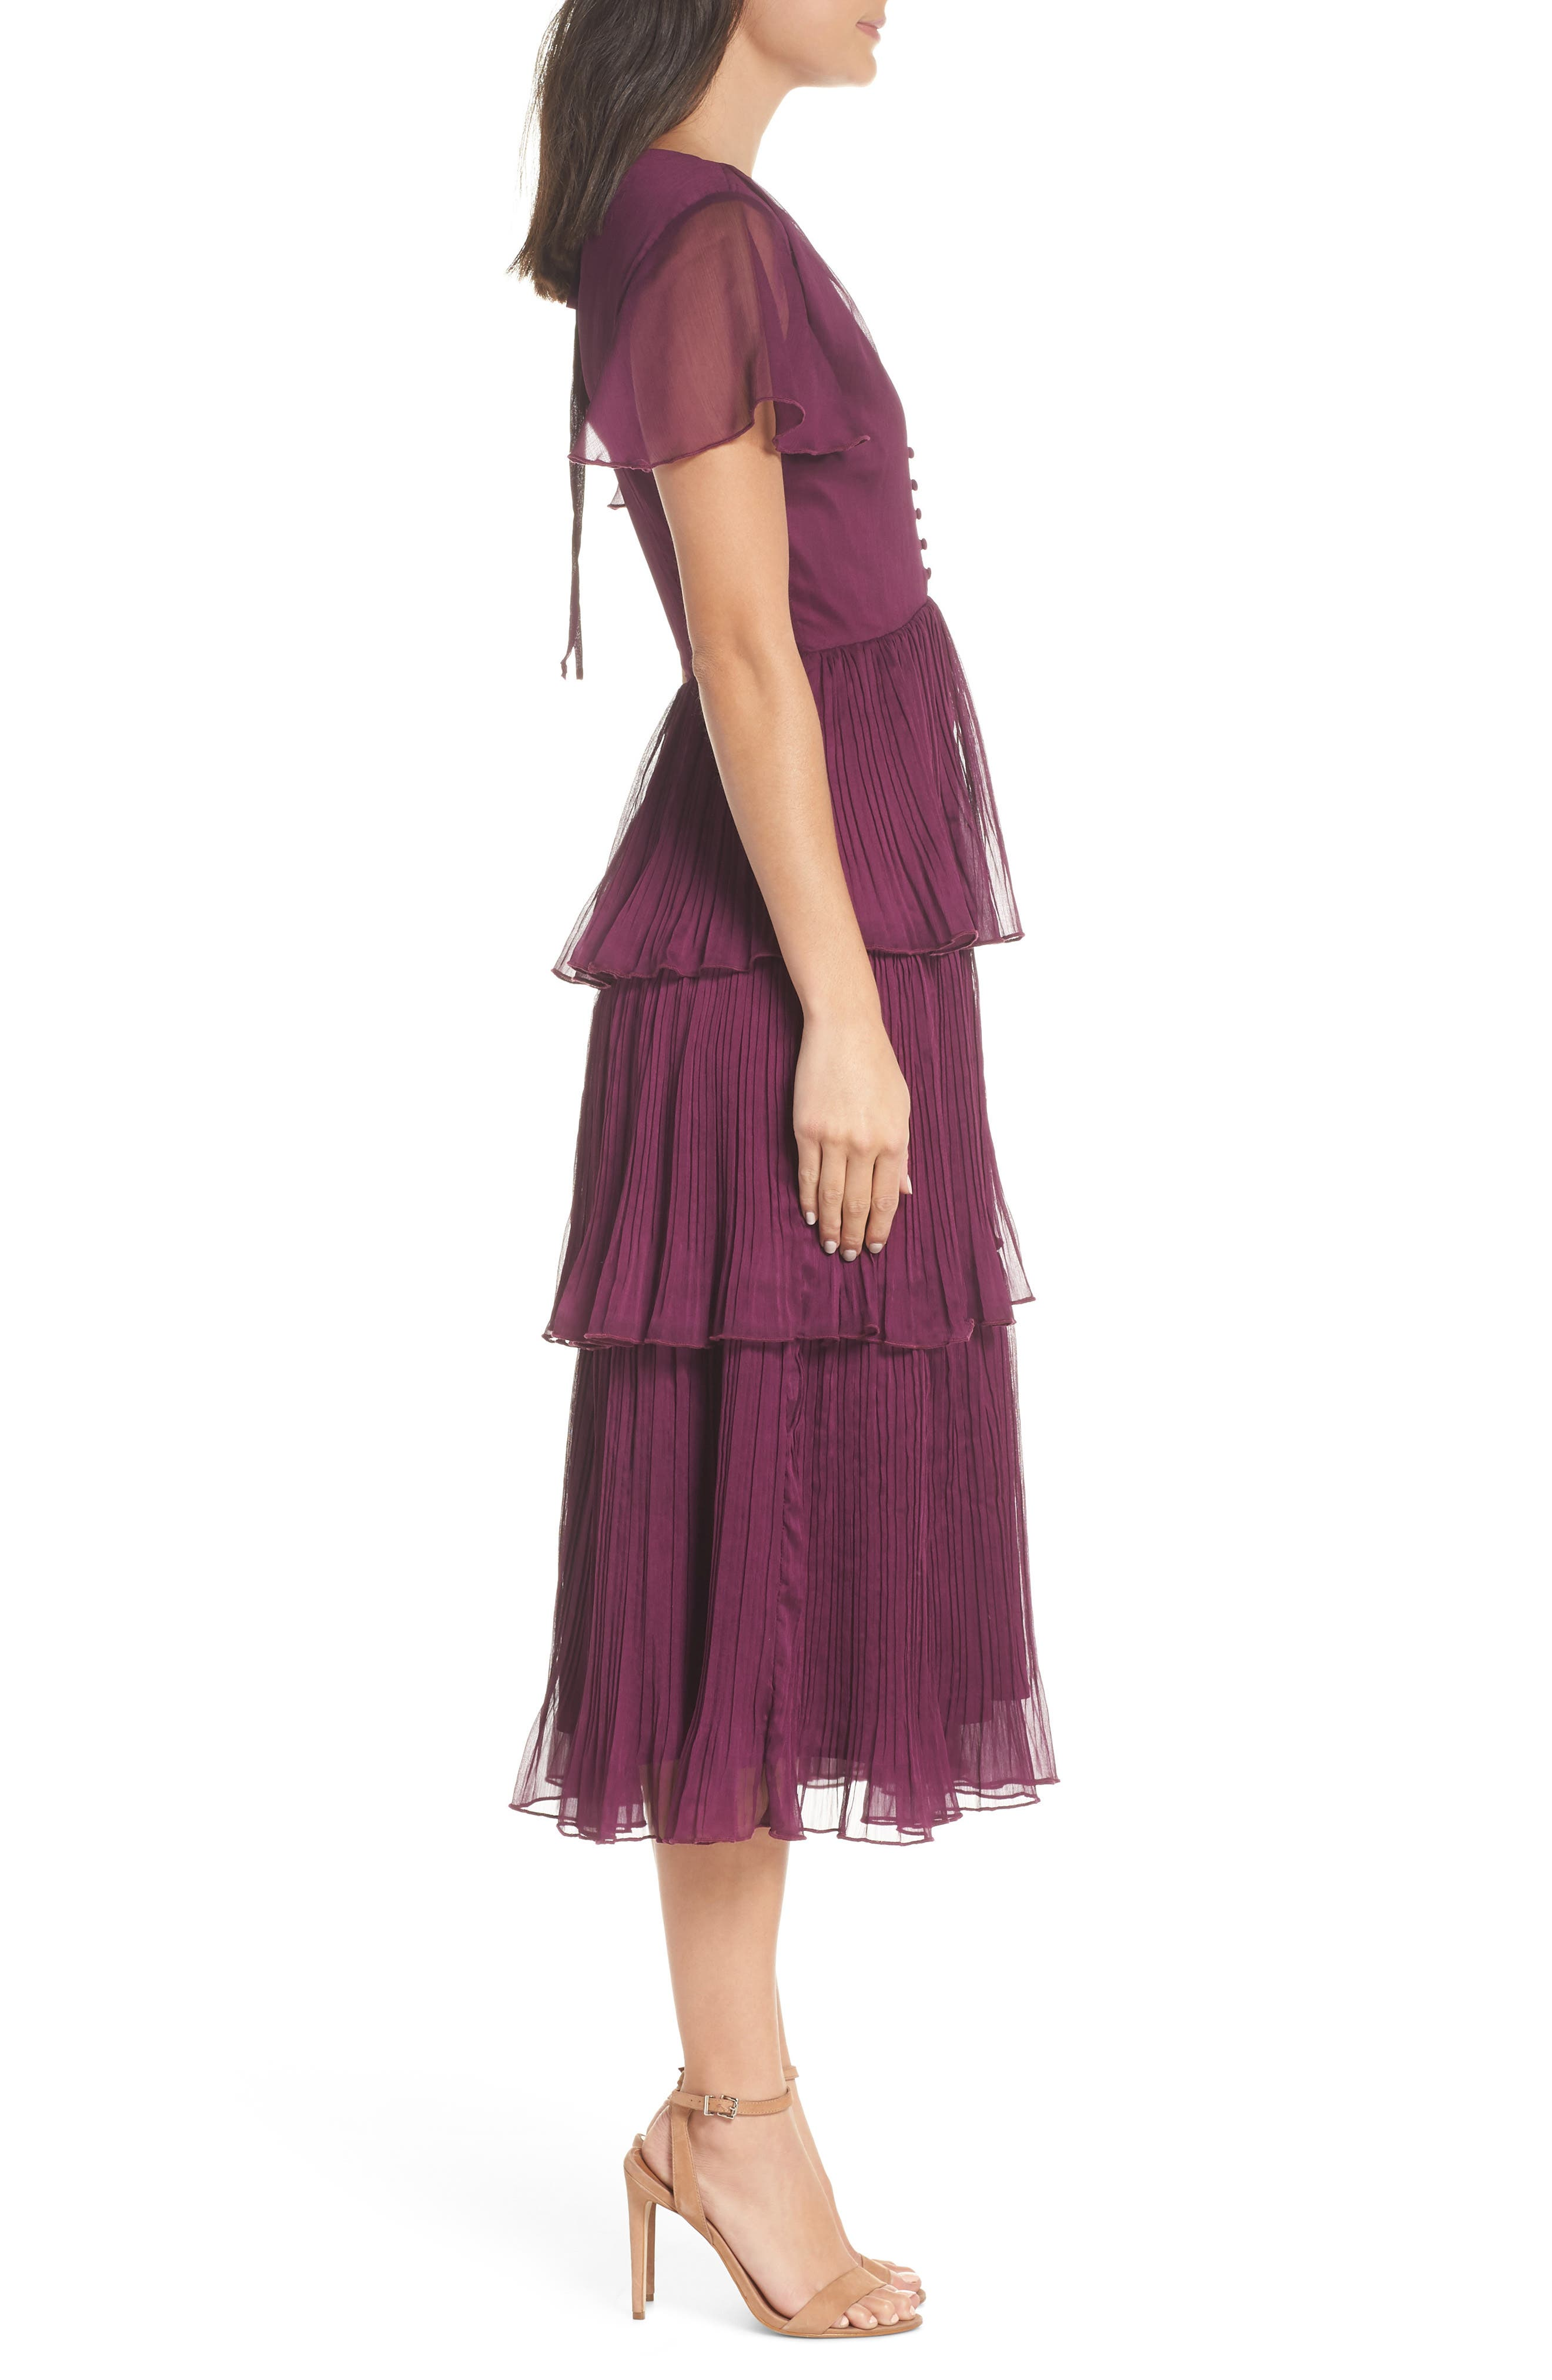 Tiered Skirt Midi Dress,                             Alternate thumbnail 3, color,                             PURPLE DARK